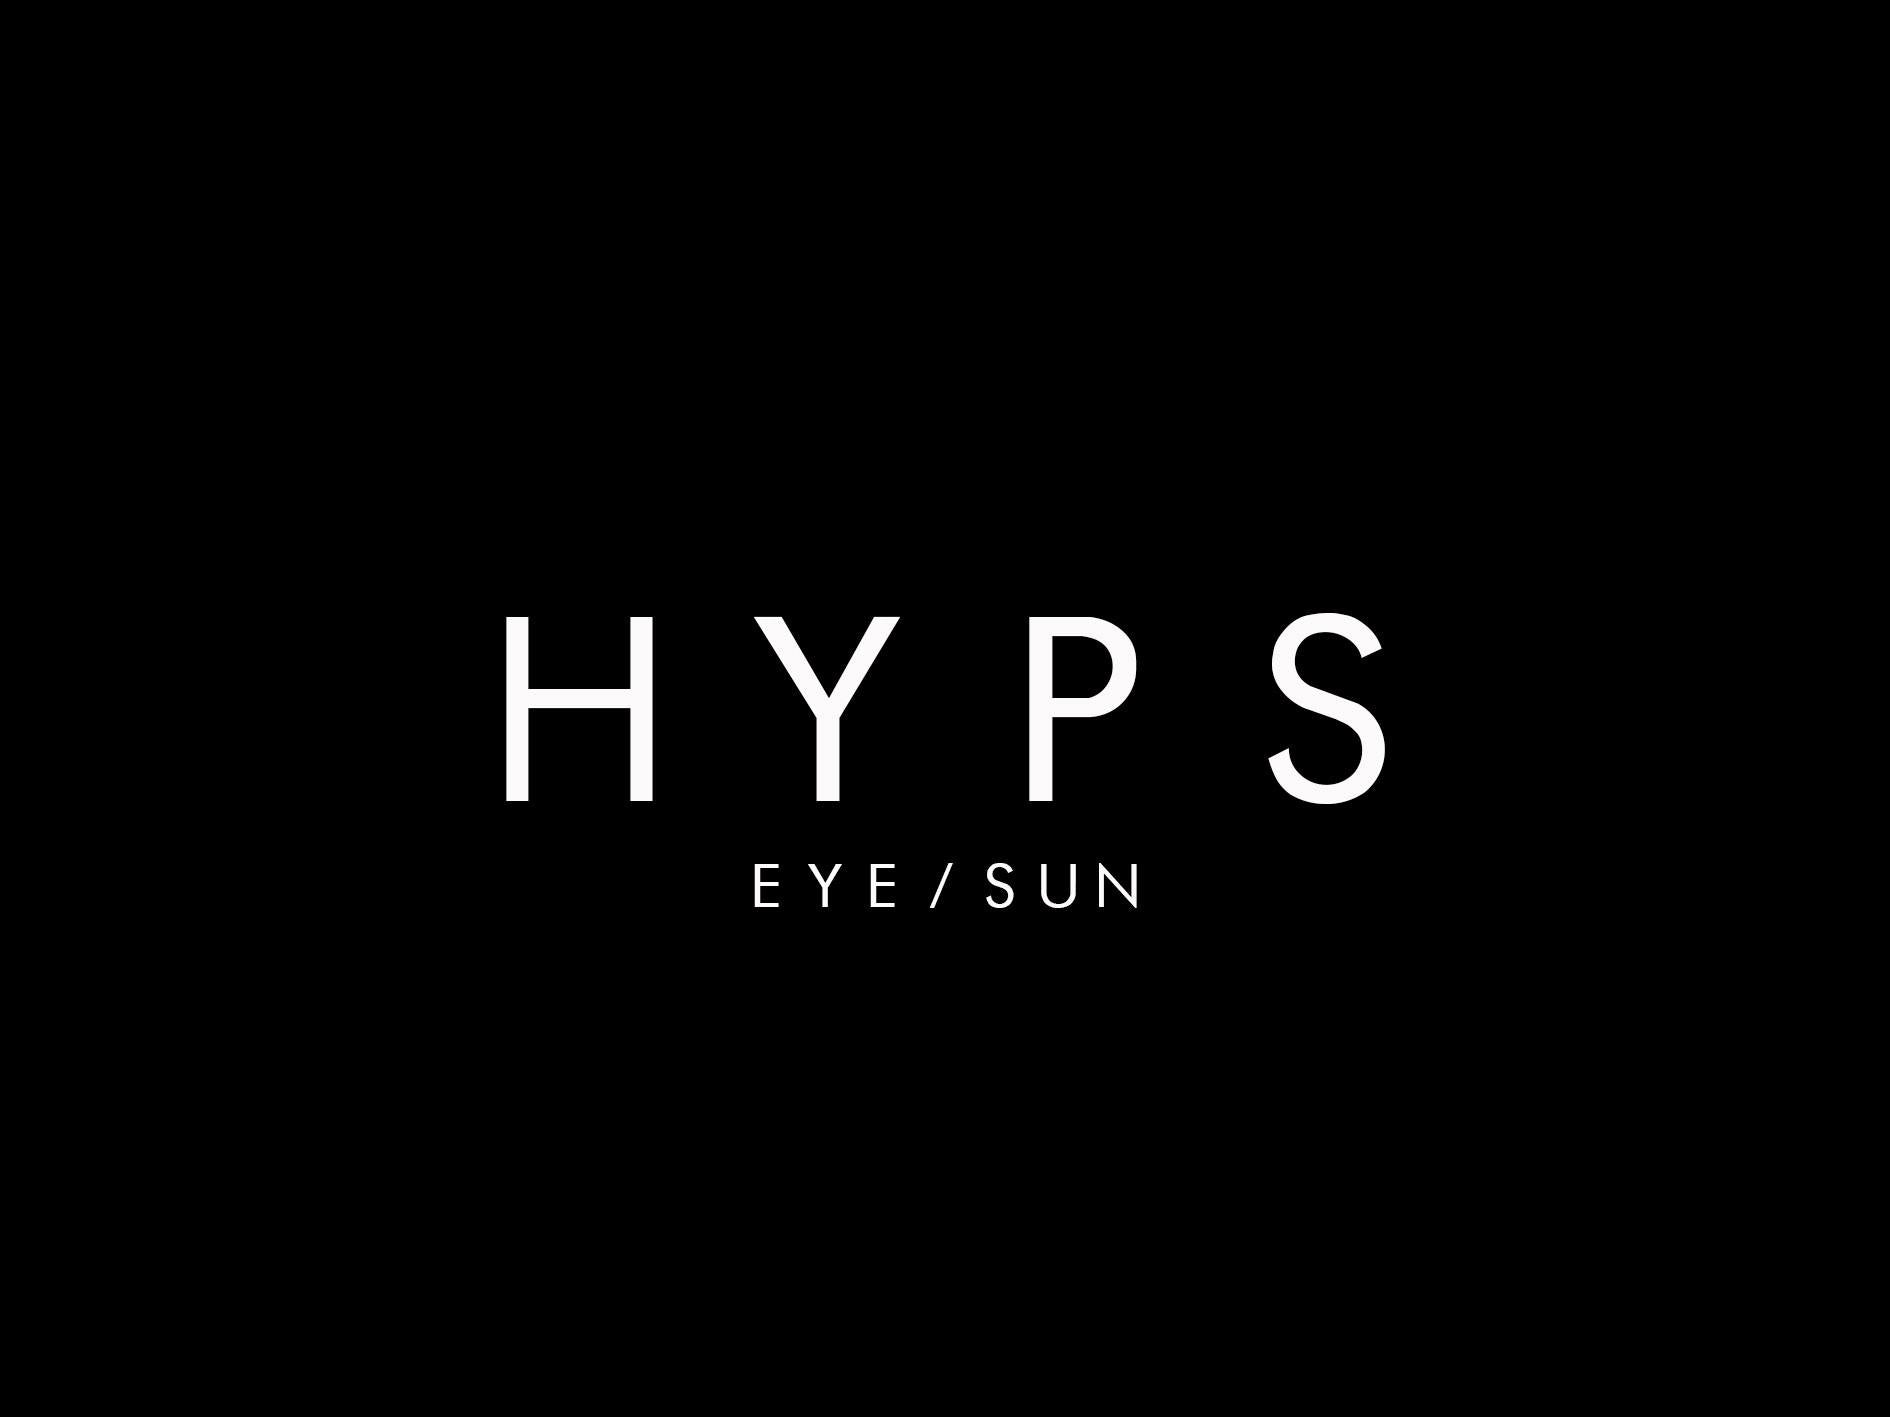 HYPS EYEWEAR Screenshot - 3